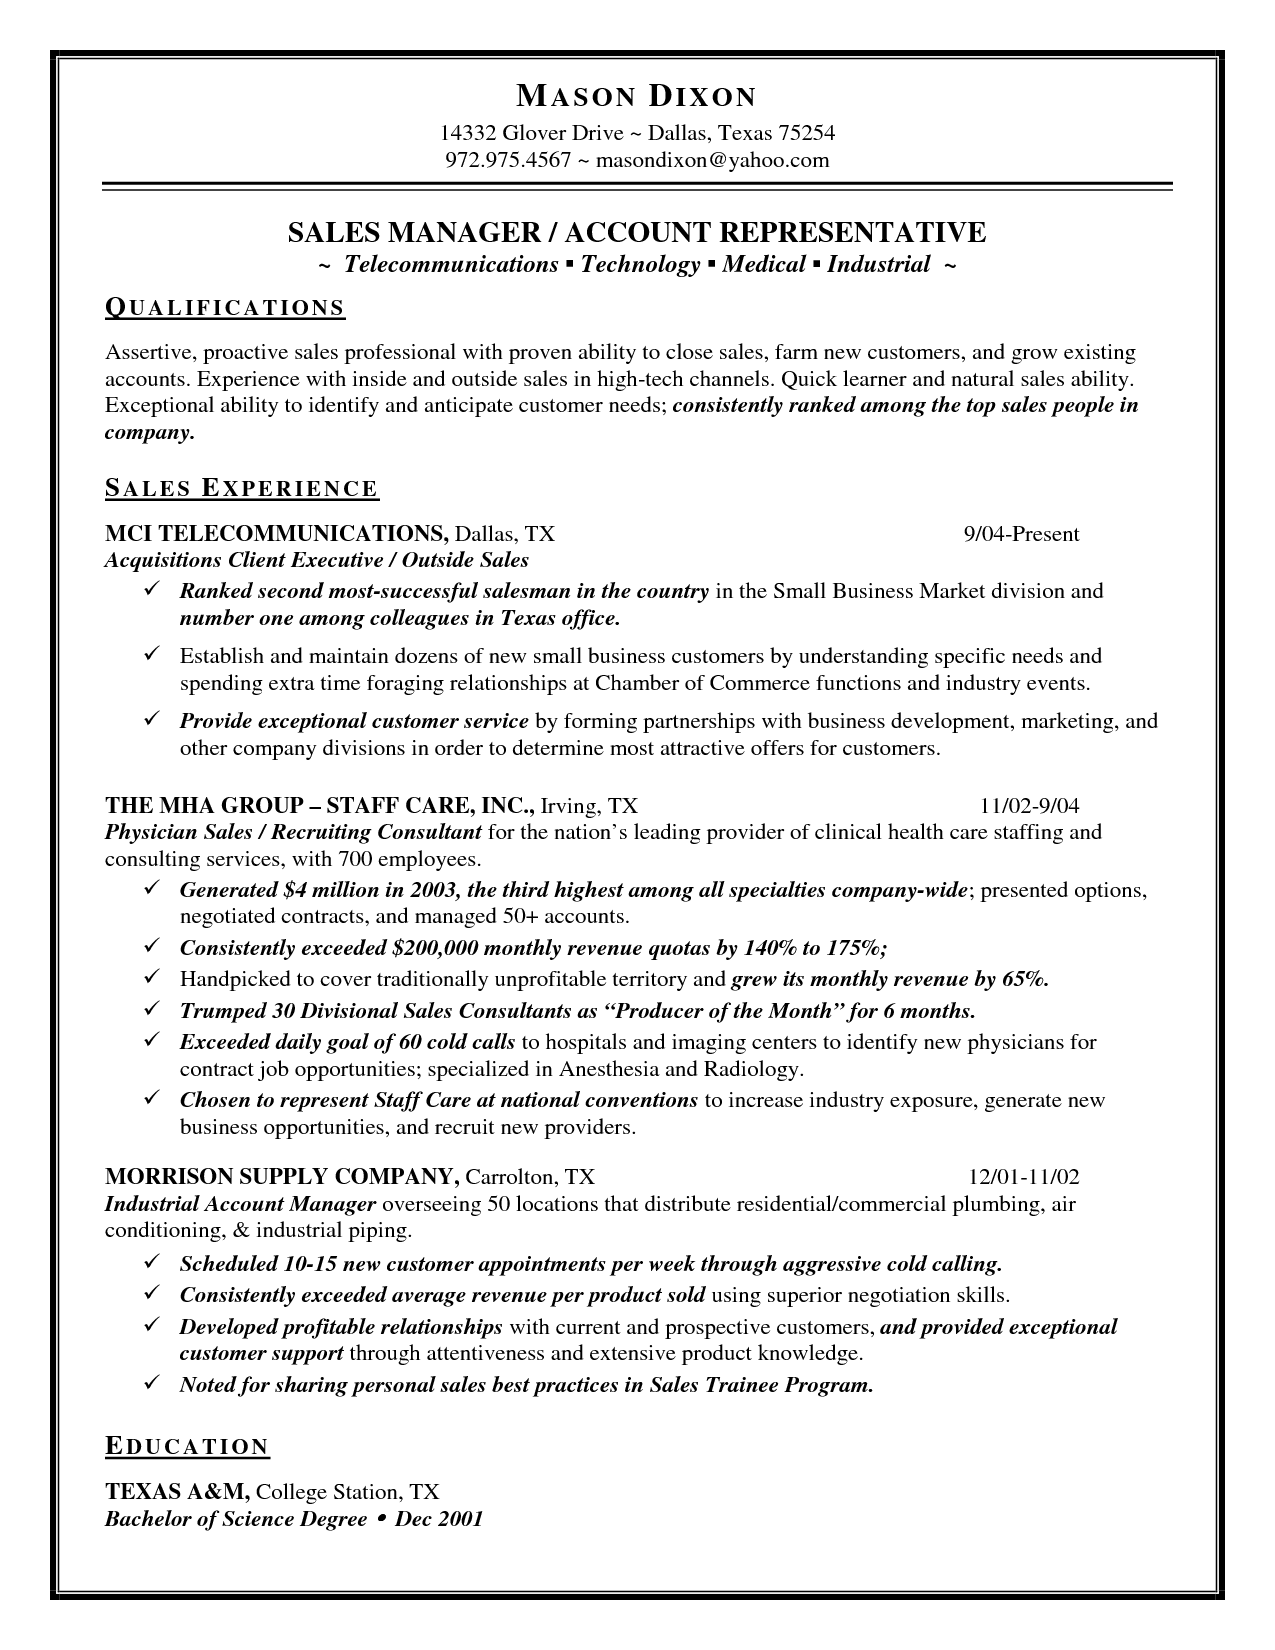 quick learner resume inside sales resume sample mason dixon 14332 glover drive dallas - Objective For Sales Resume